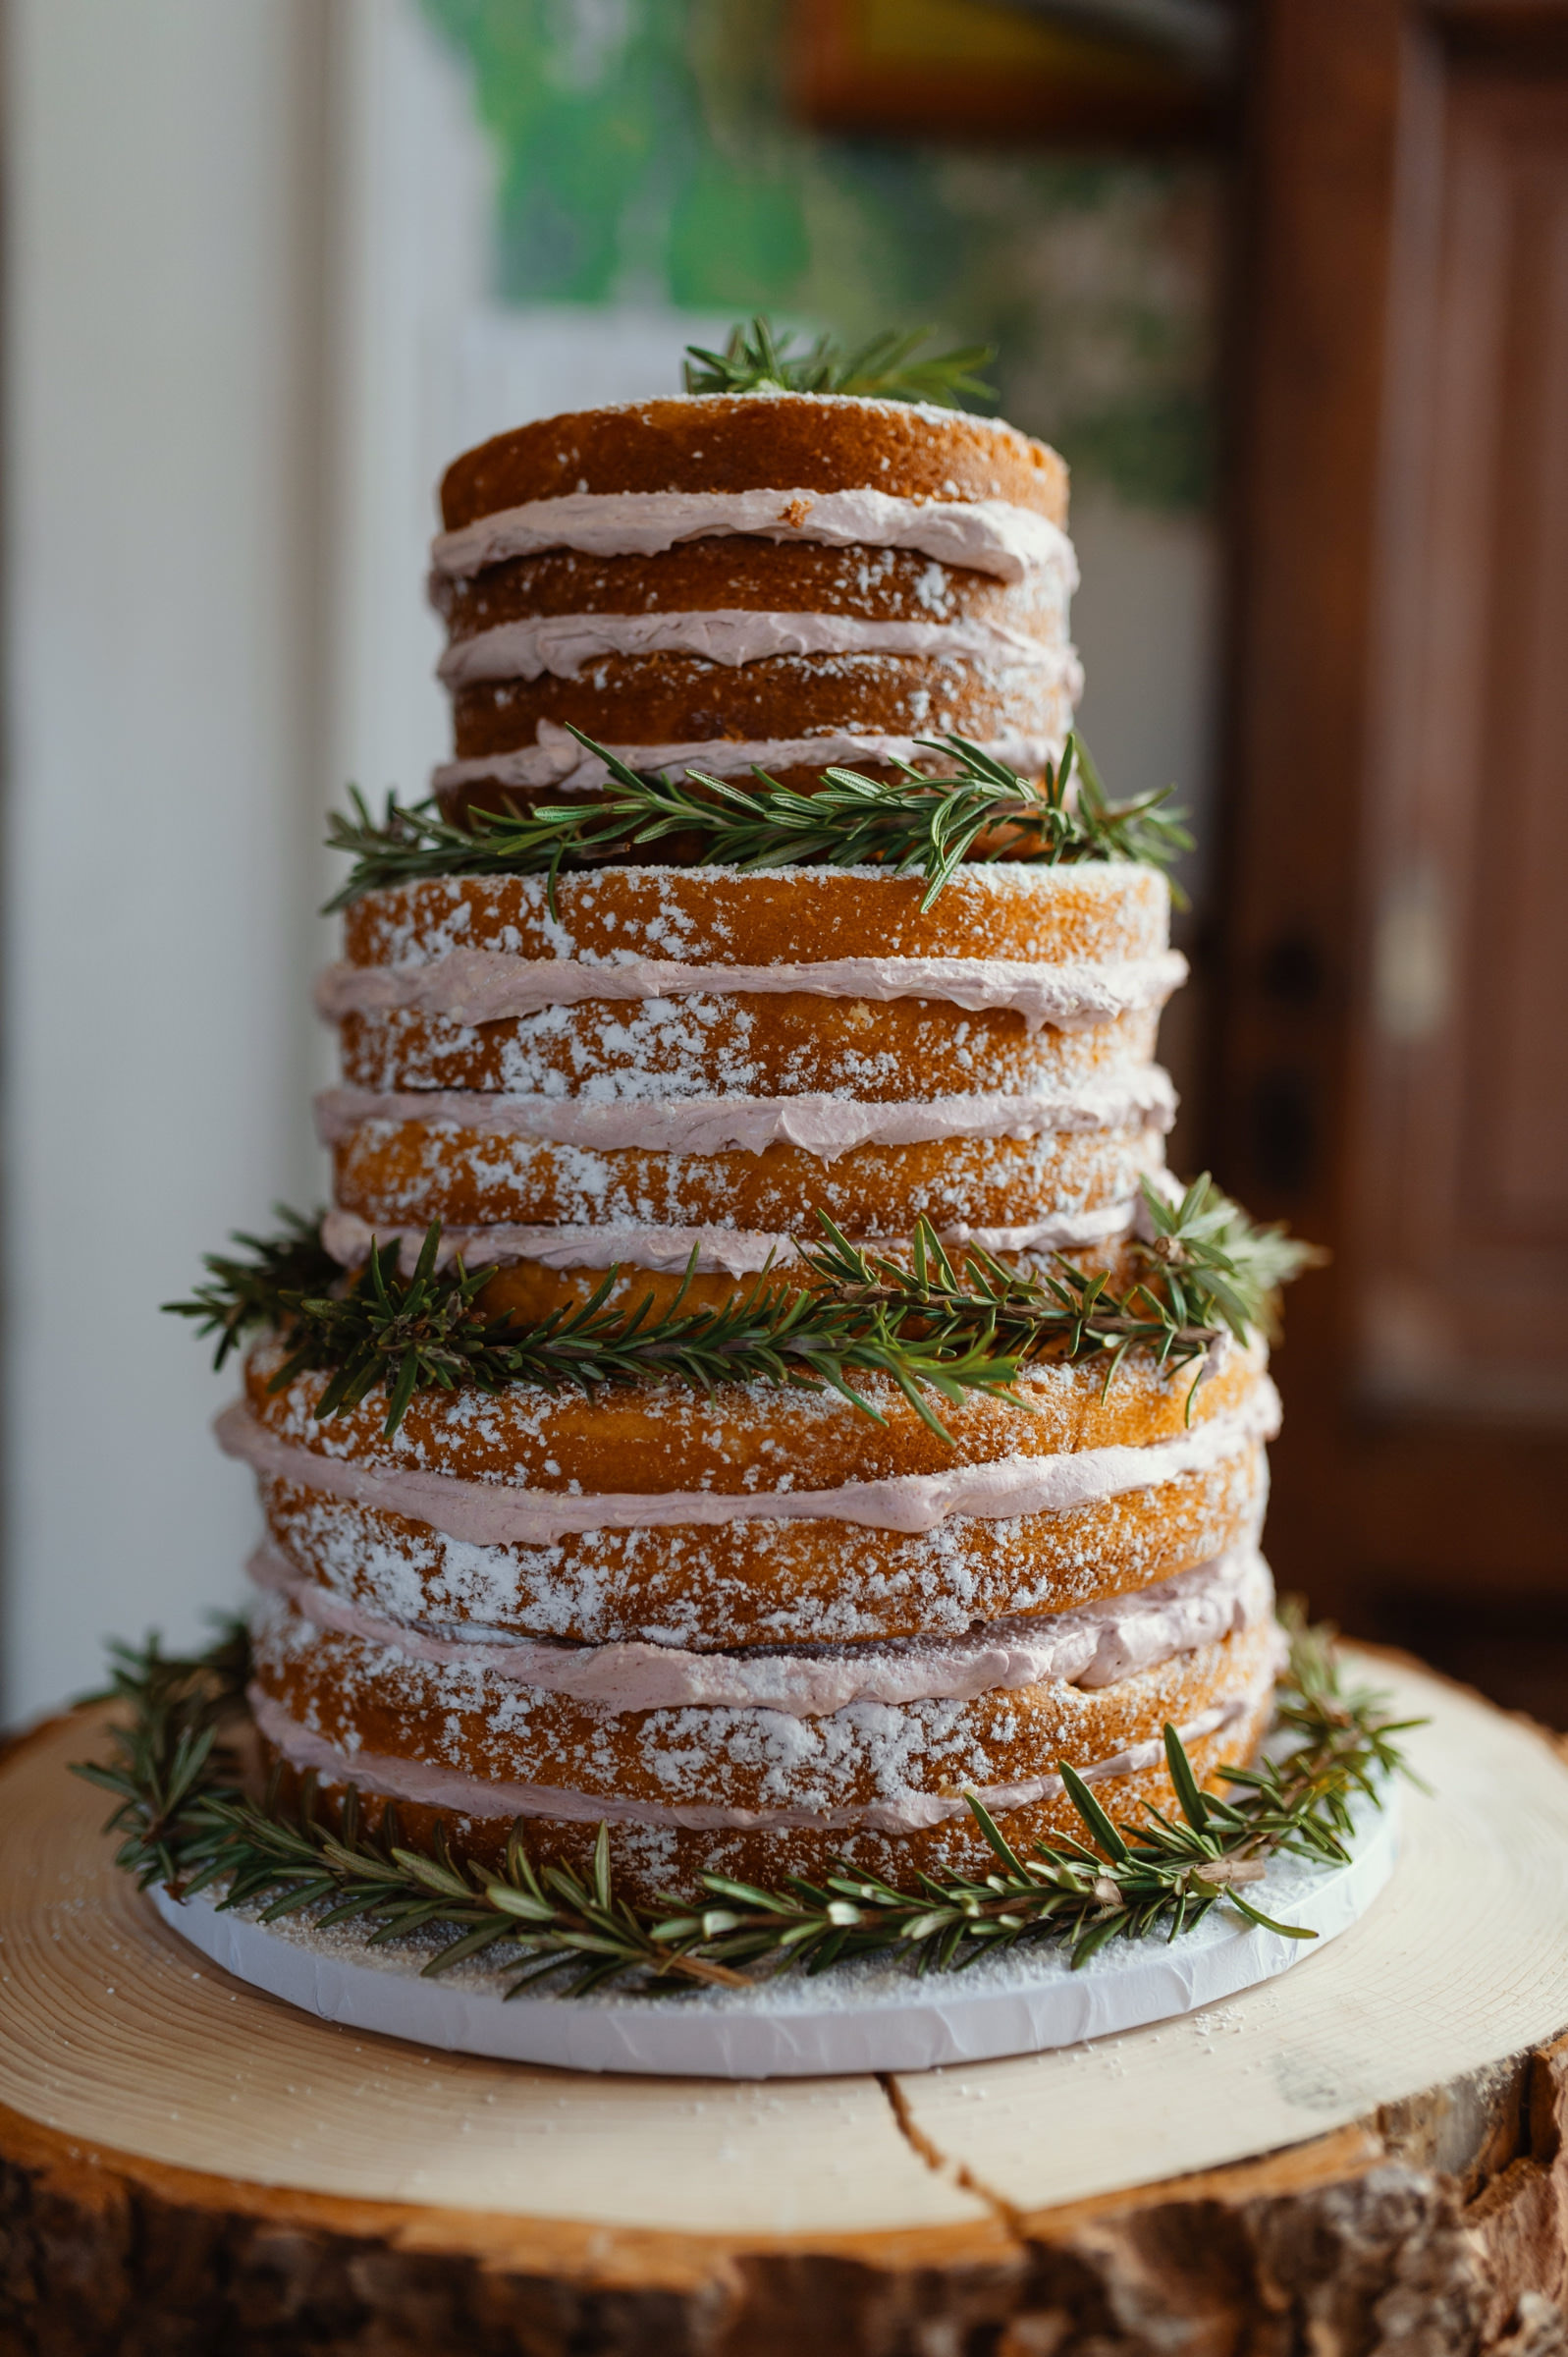 Twelve layer cake with rosemary - photo by Dark Roux